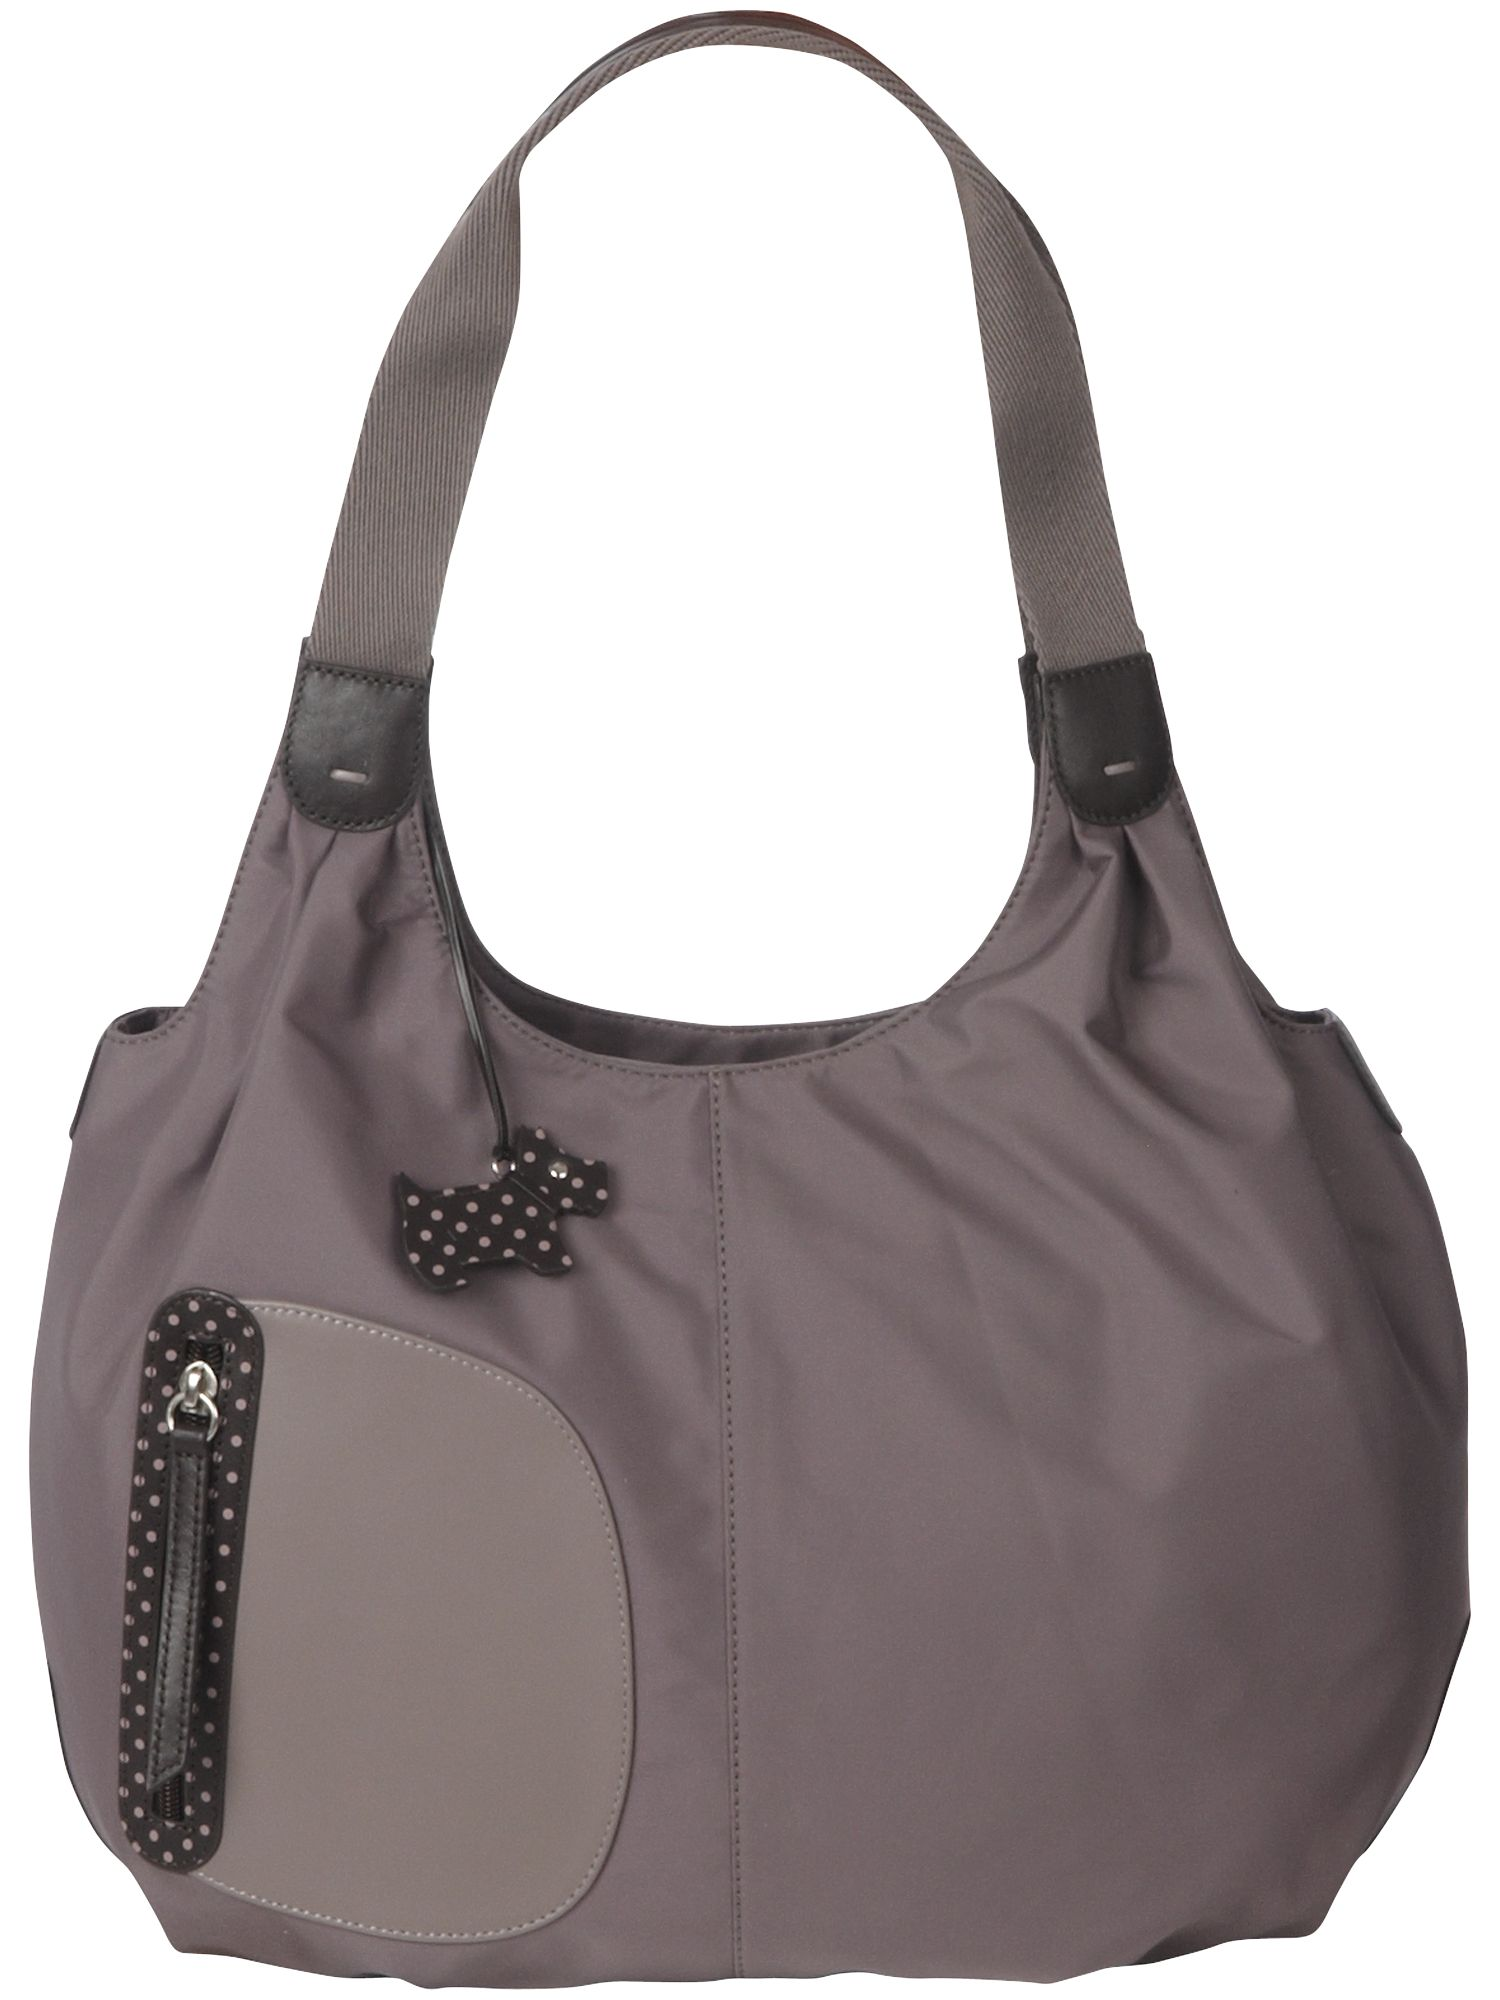 Pursuit large nylon shoulder tote bag